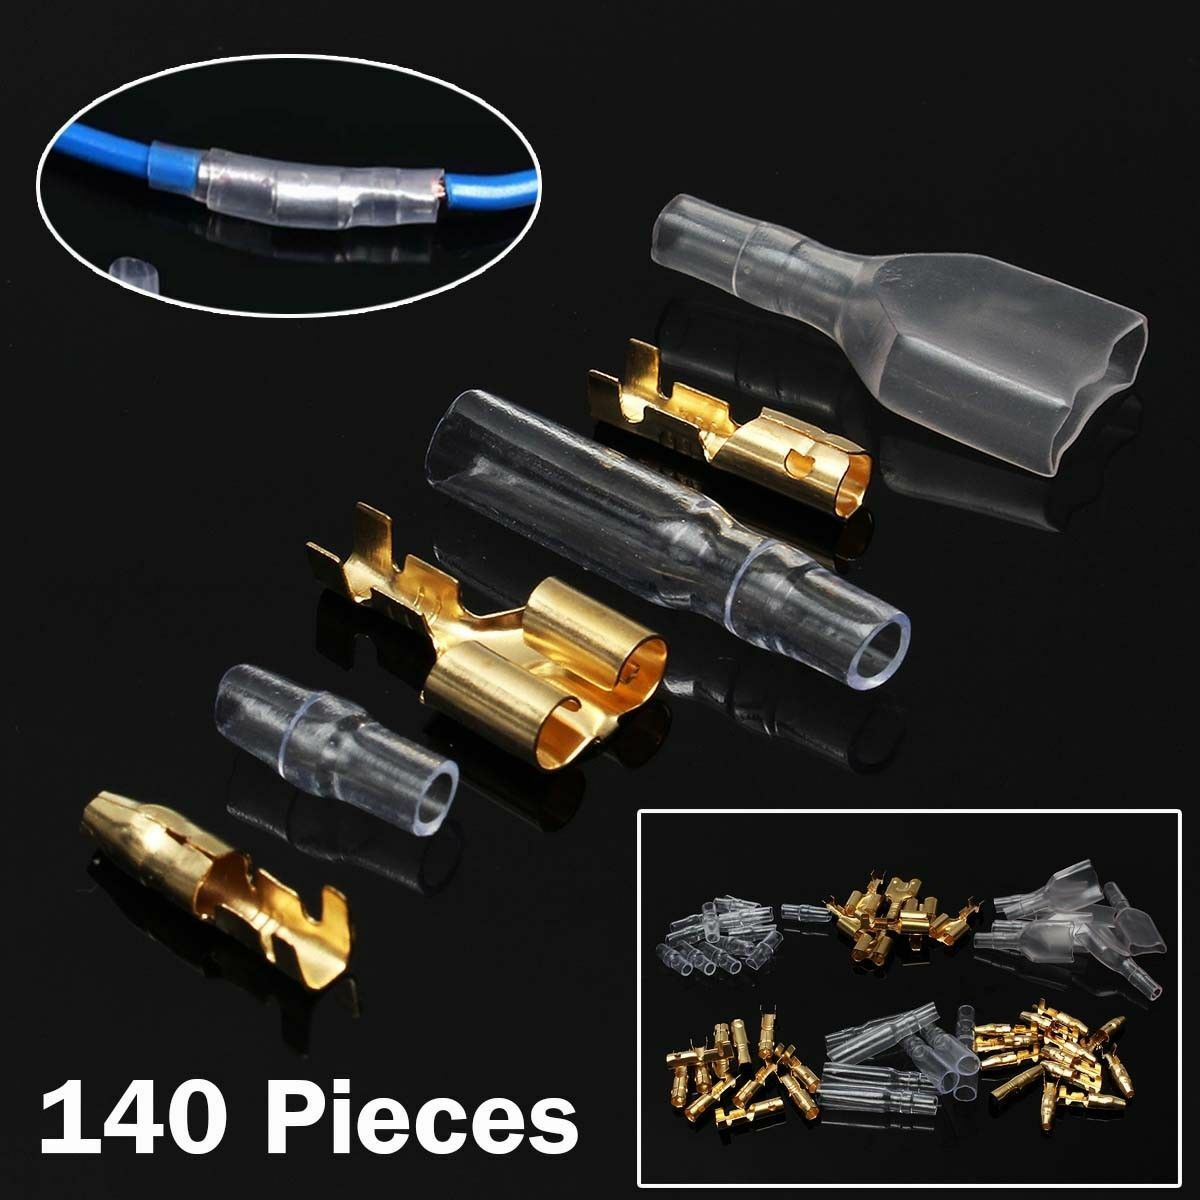 140pcs 39mm Car Motorcycle Brass Bullet Connectors Malefemale Wire Wiring Terminal 1 Of 3free Shipping See More